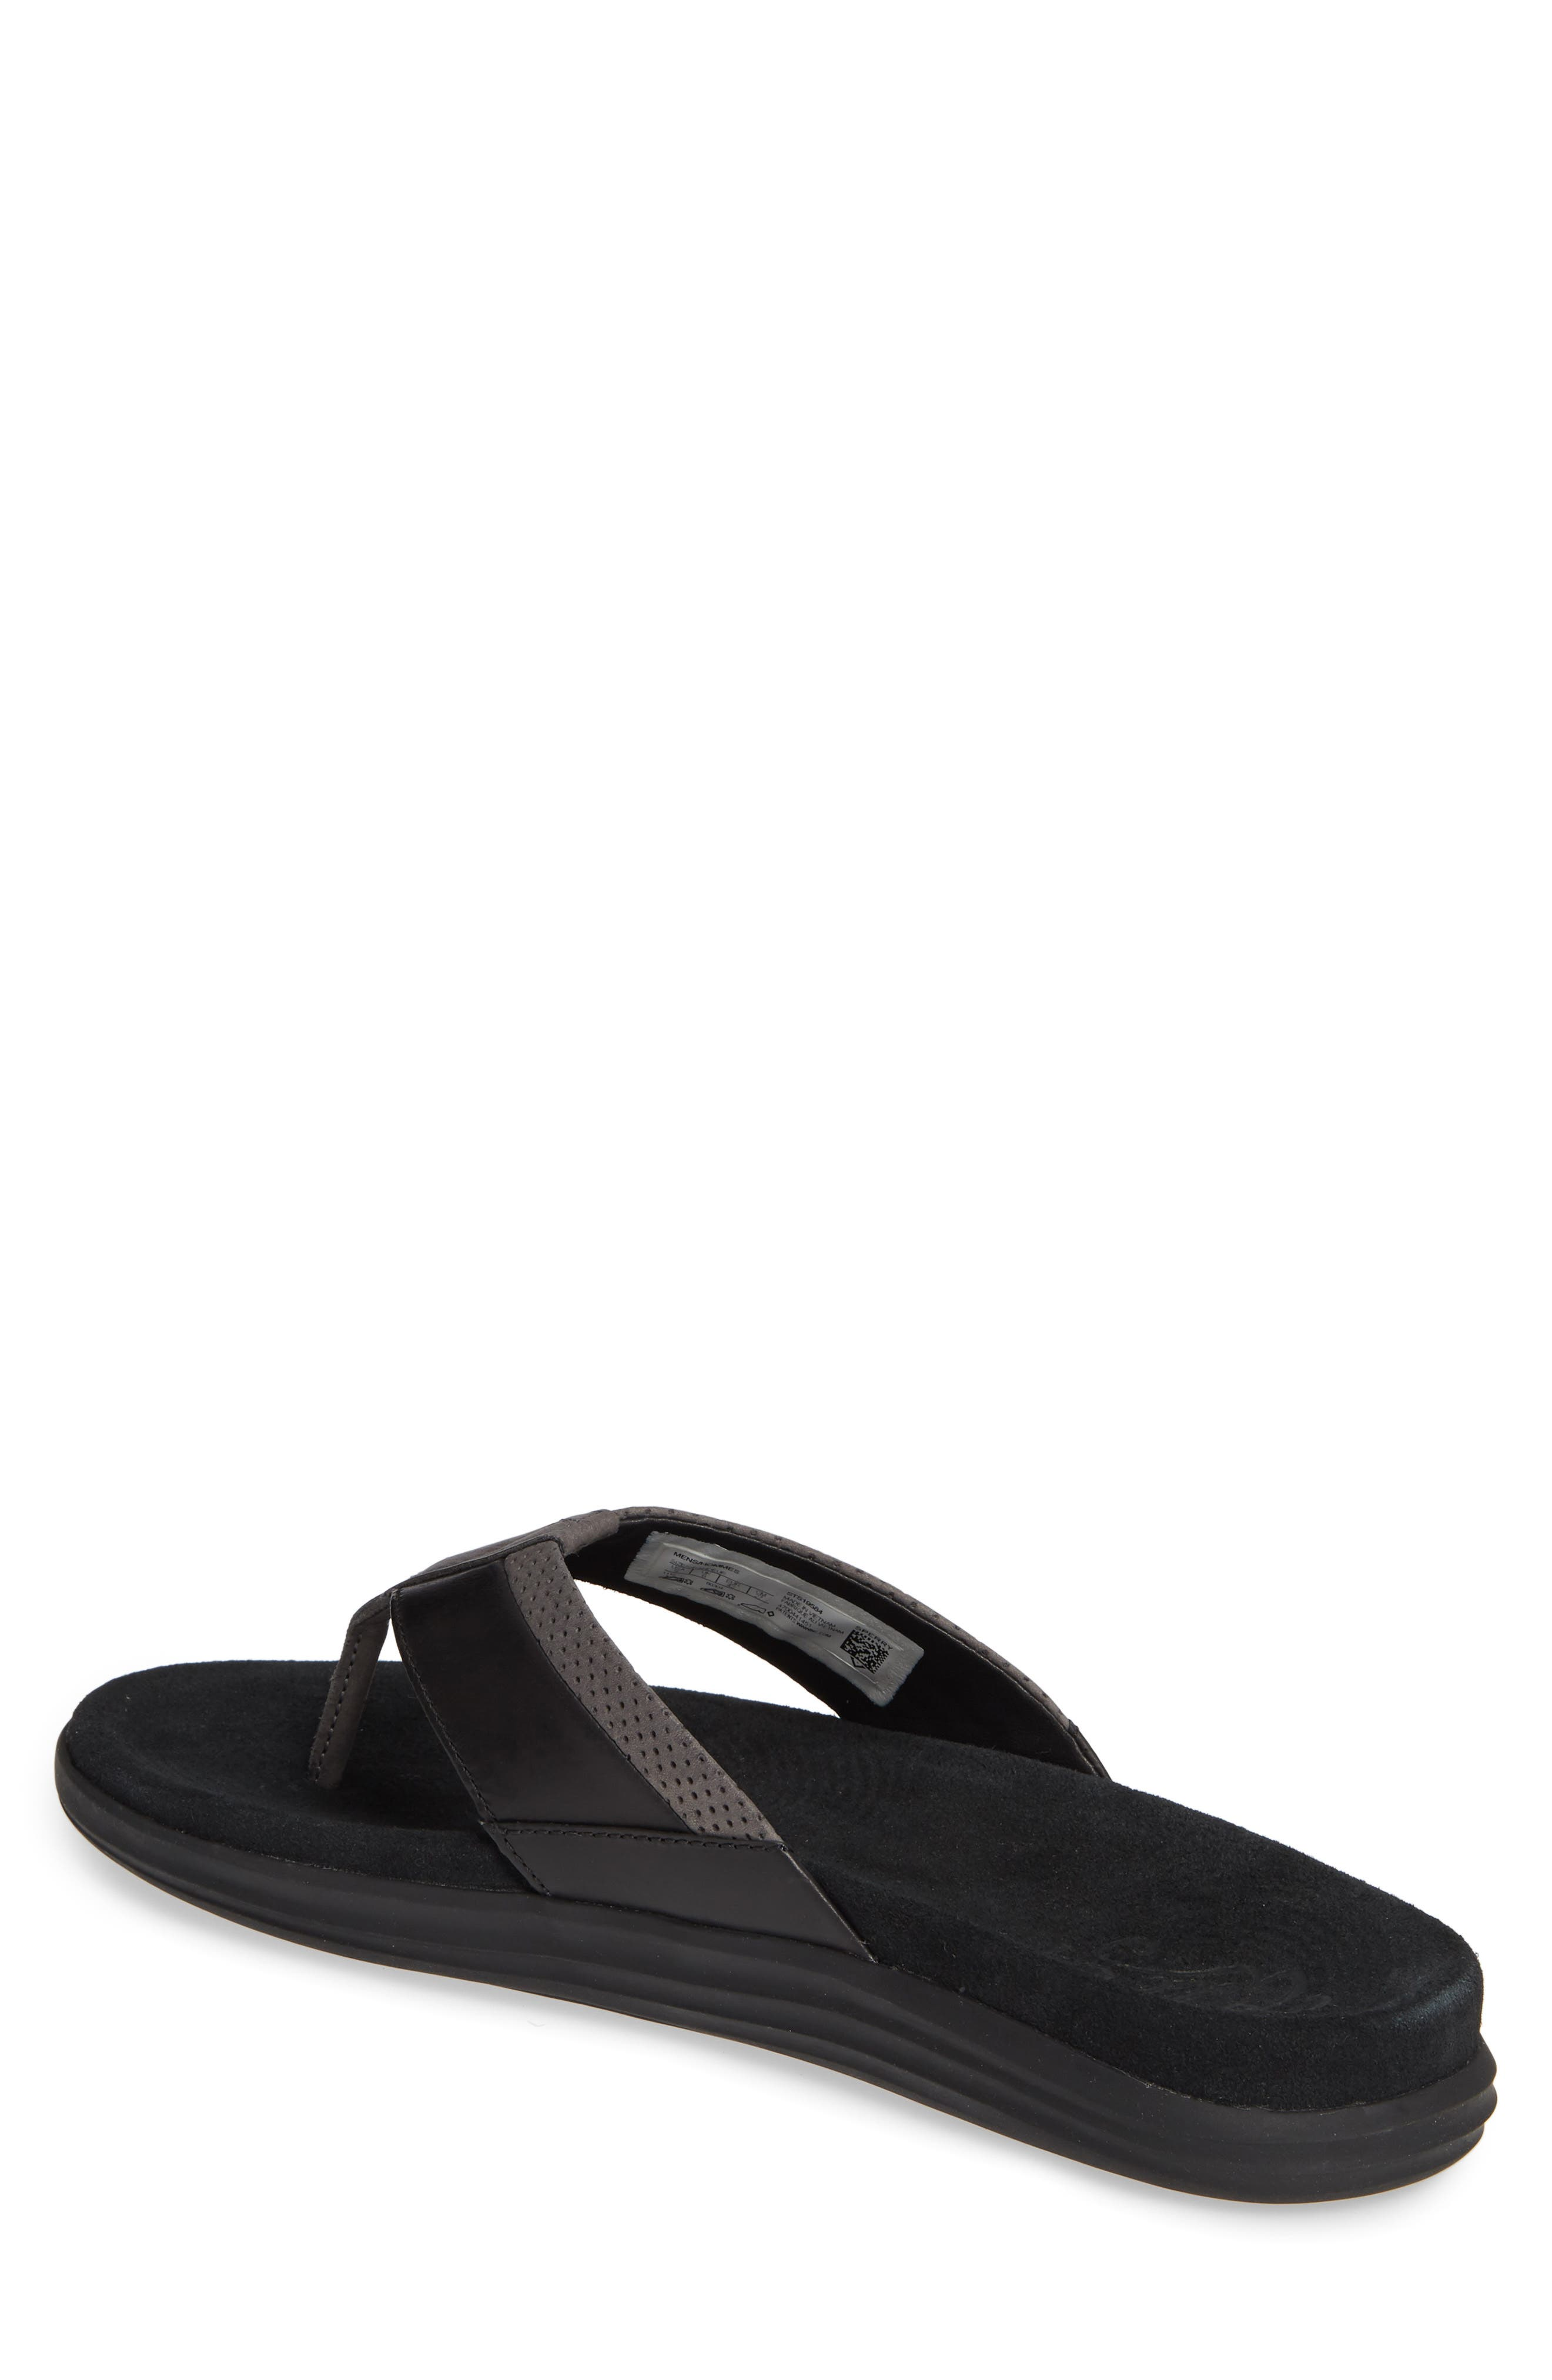 SPERRY, Gold Cup Amalfi Flip Flop, Alternate thumbnail 2, color, BLACK/ GREY LEATHER